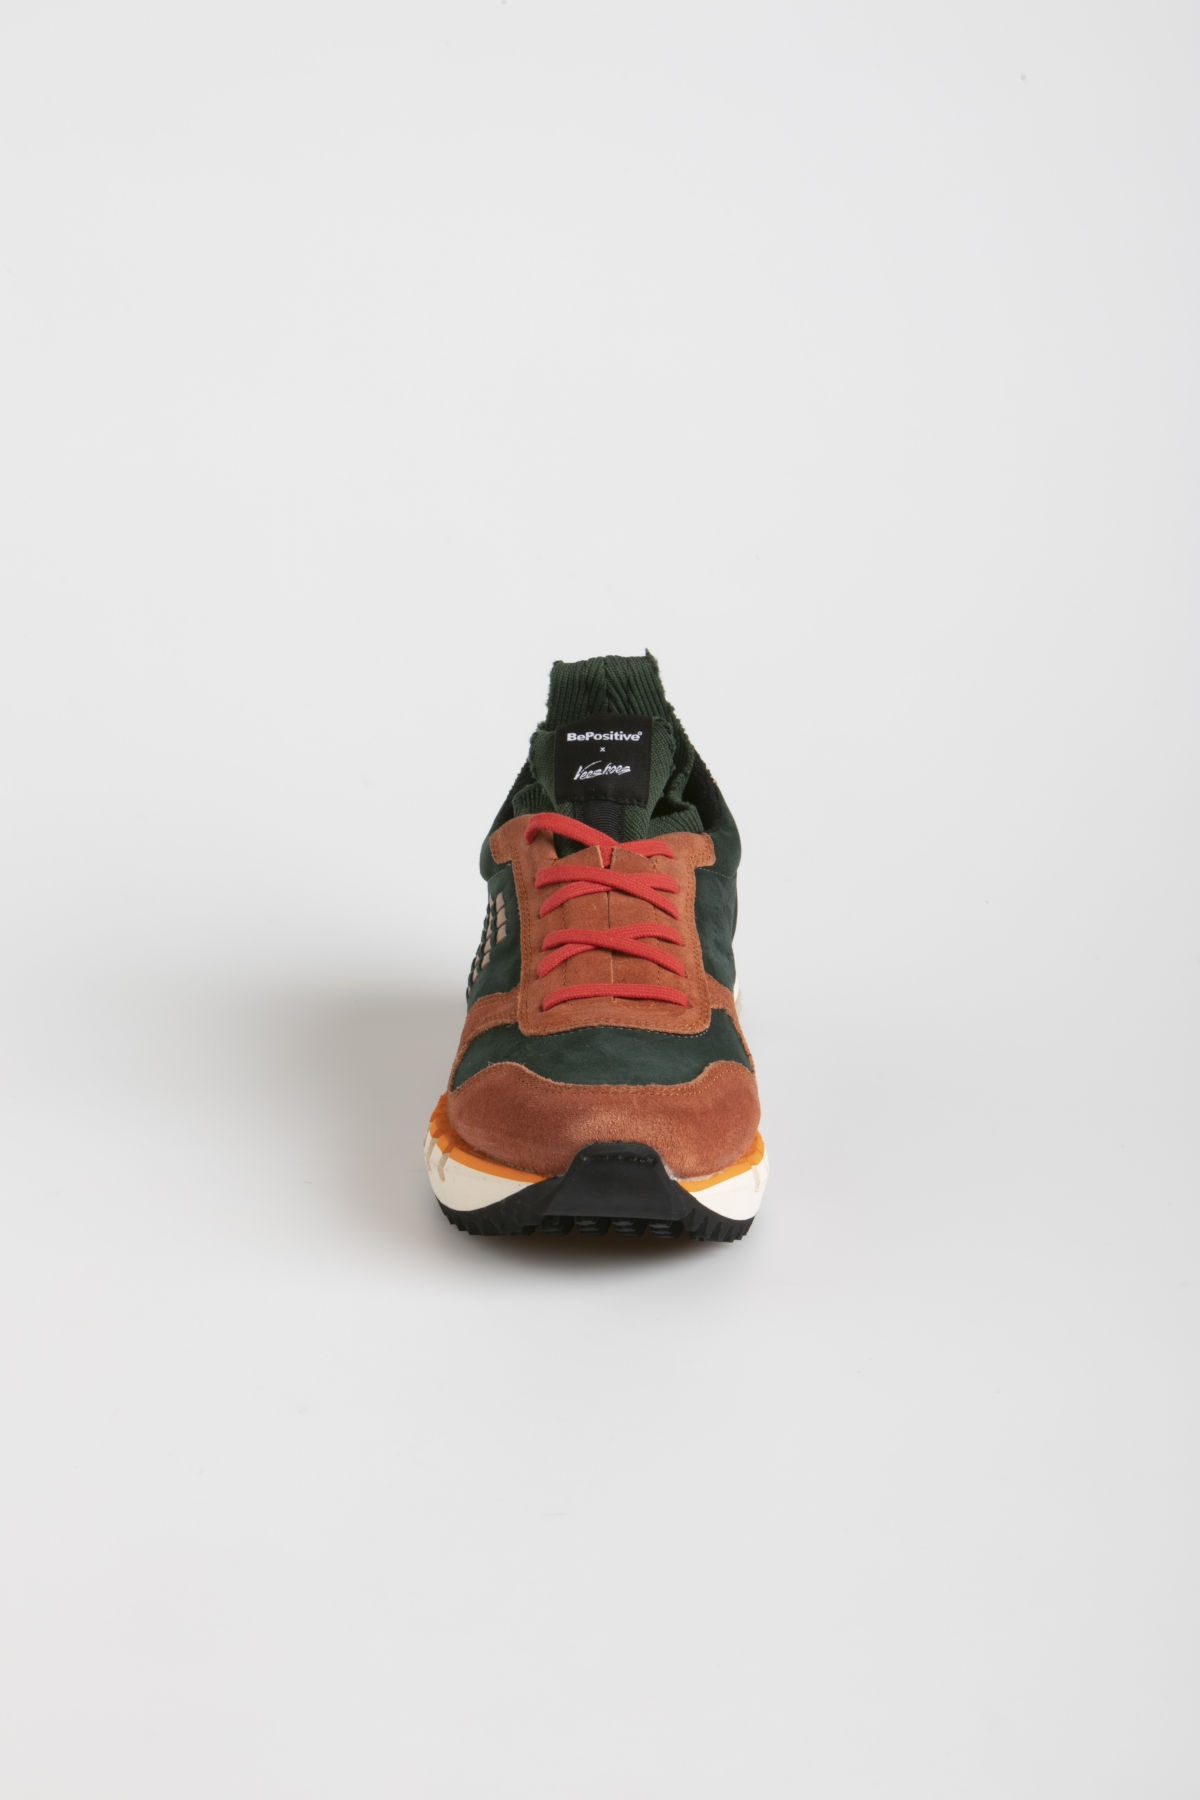 CYBER PLUS Shoes for man BEPOSITIVE F/W 19-20